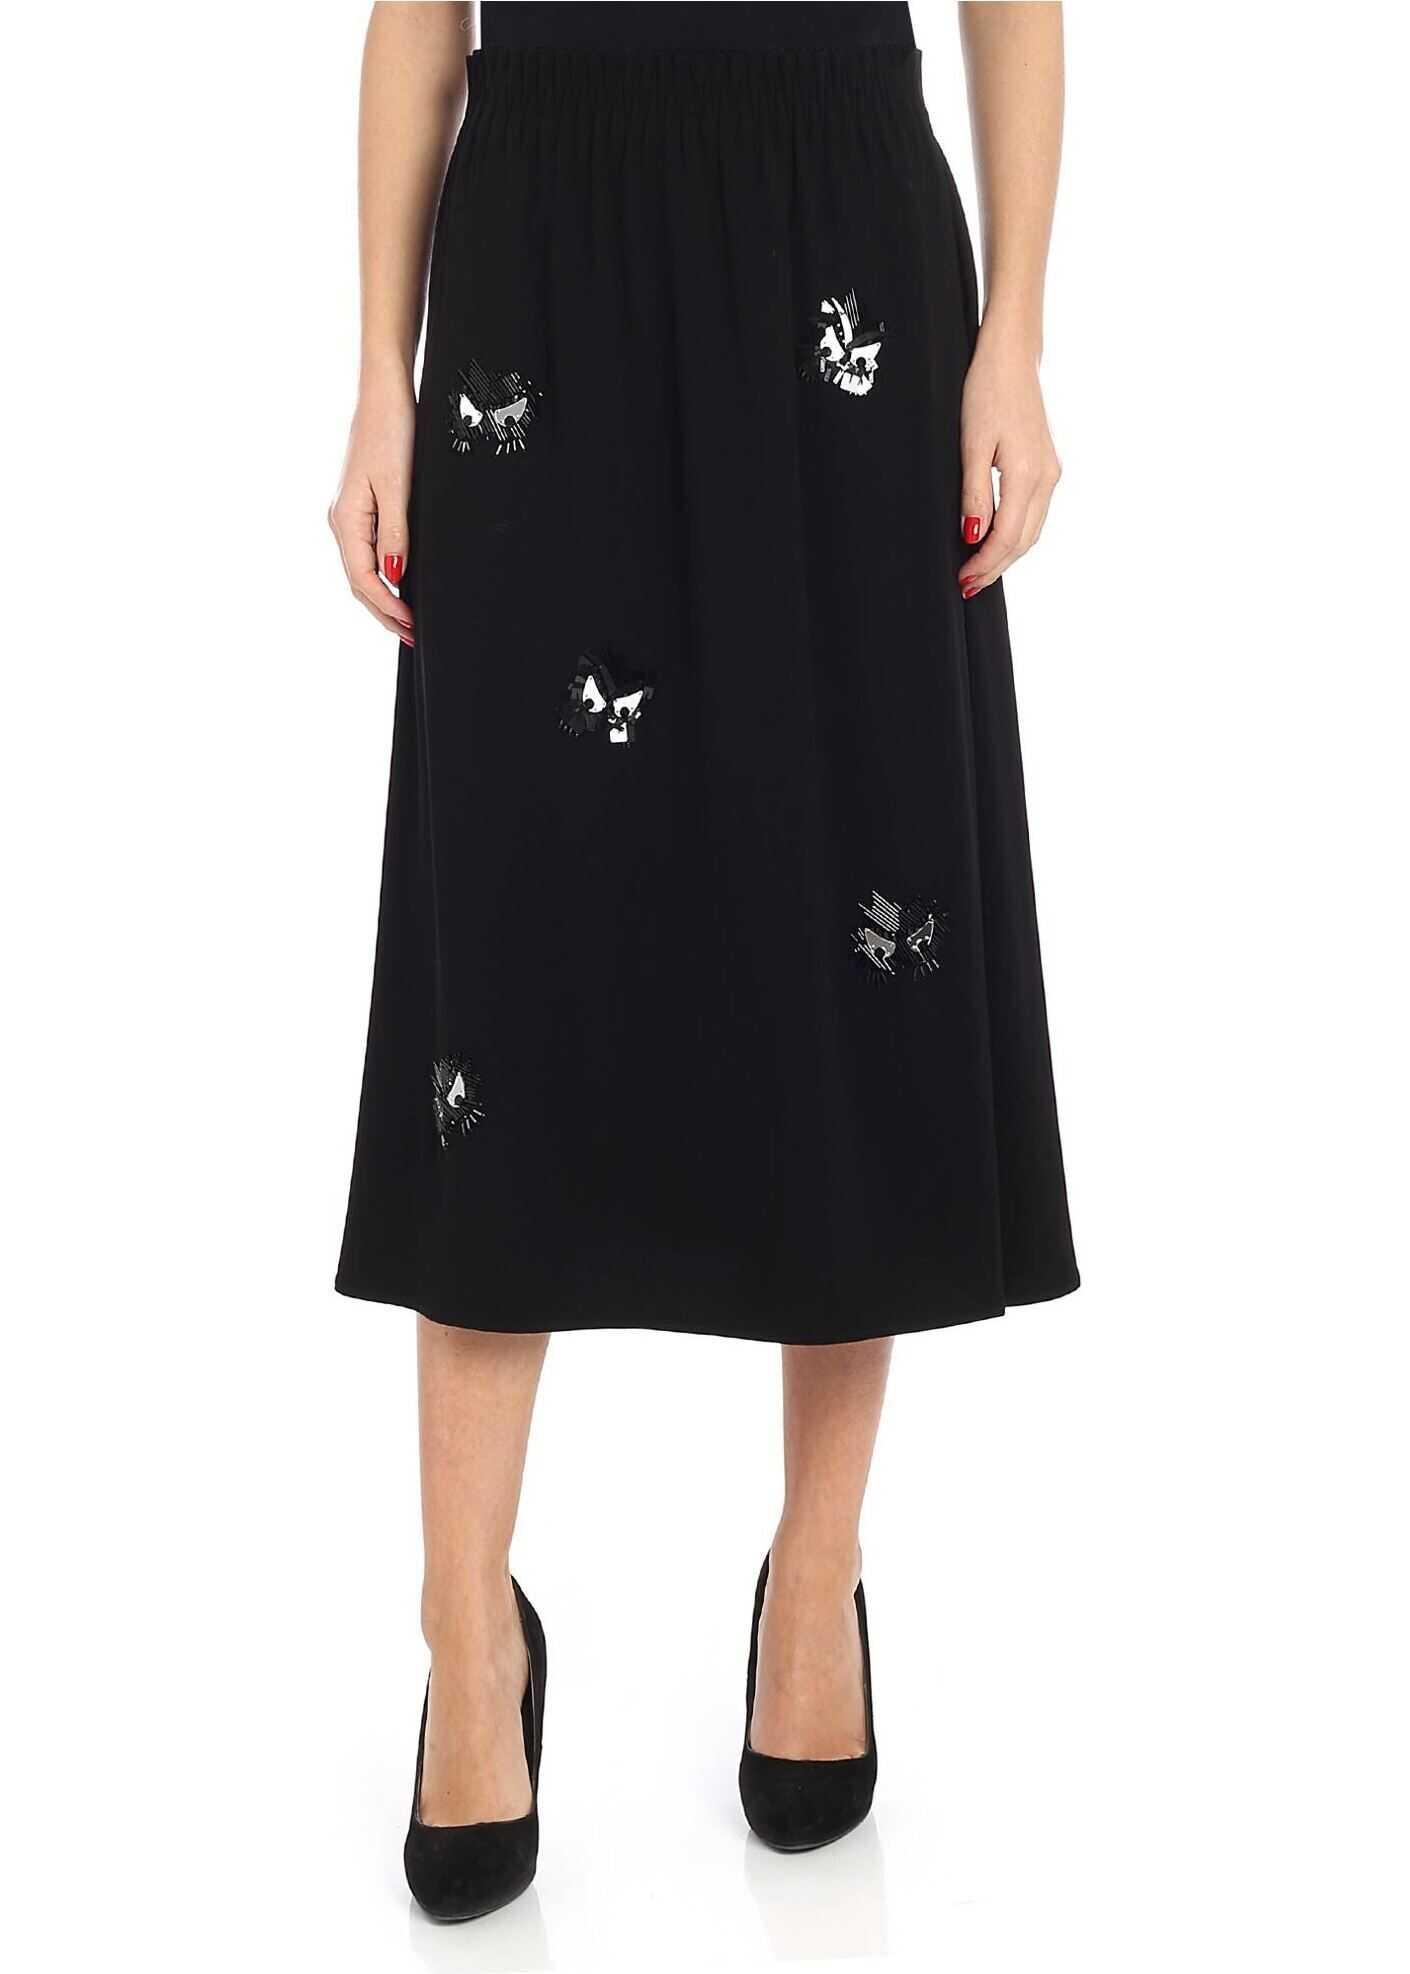 MCQ Alexander McQueen Black Midi Skirt With Beads And Sequins Black